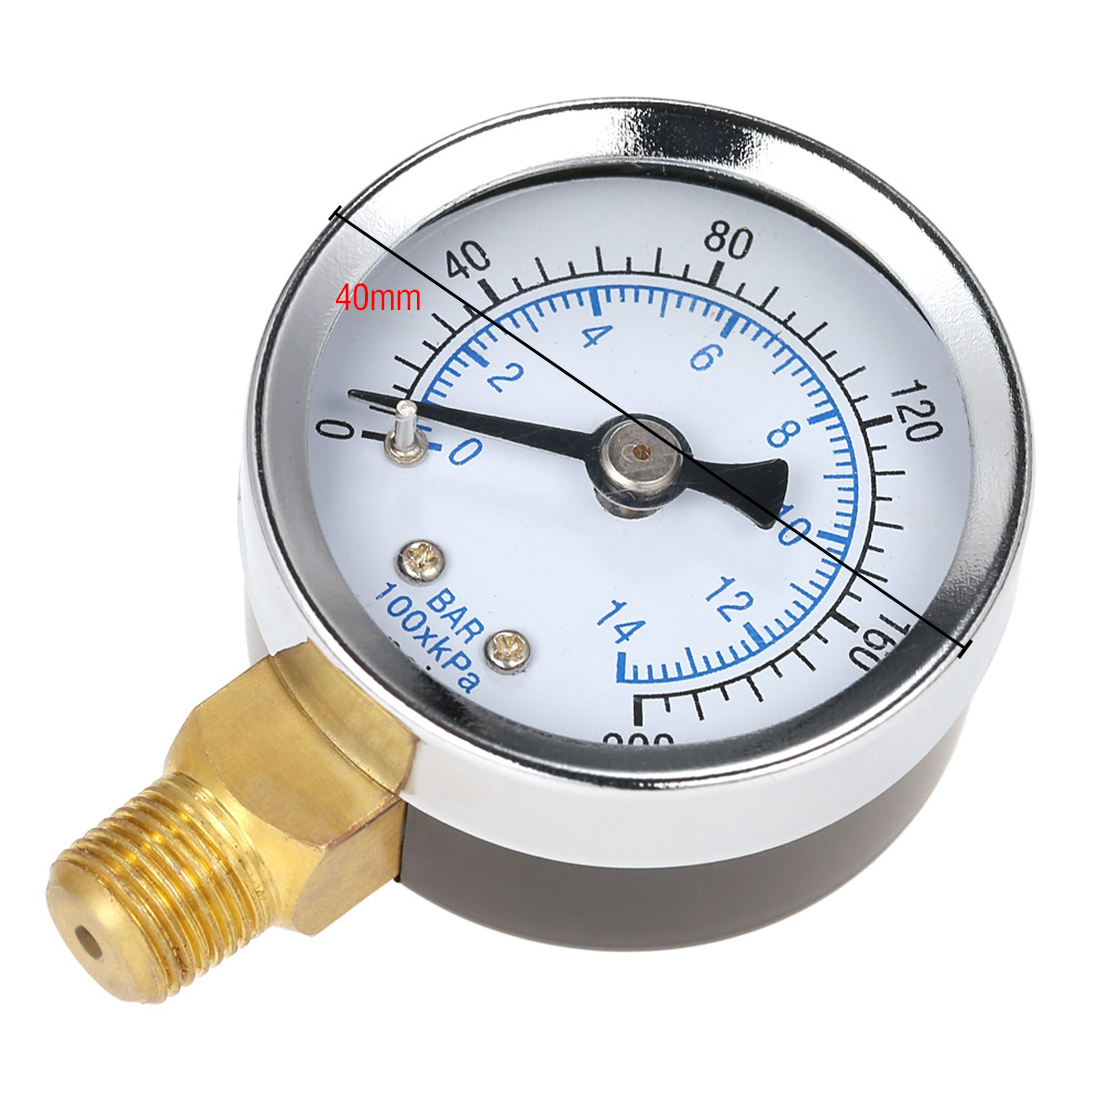 0 200PSI 0 14bar 40MM Pressure Gauge Double Scale Hydraulic Compressed Air Pressure Gauge Tester Pressure Measuring Instruments in Pressure Gauges from Tools